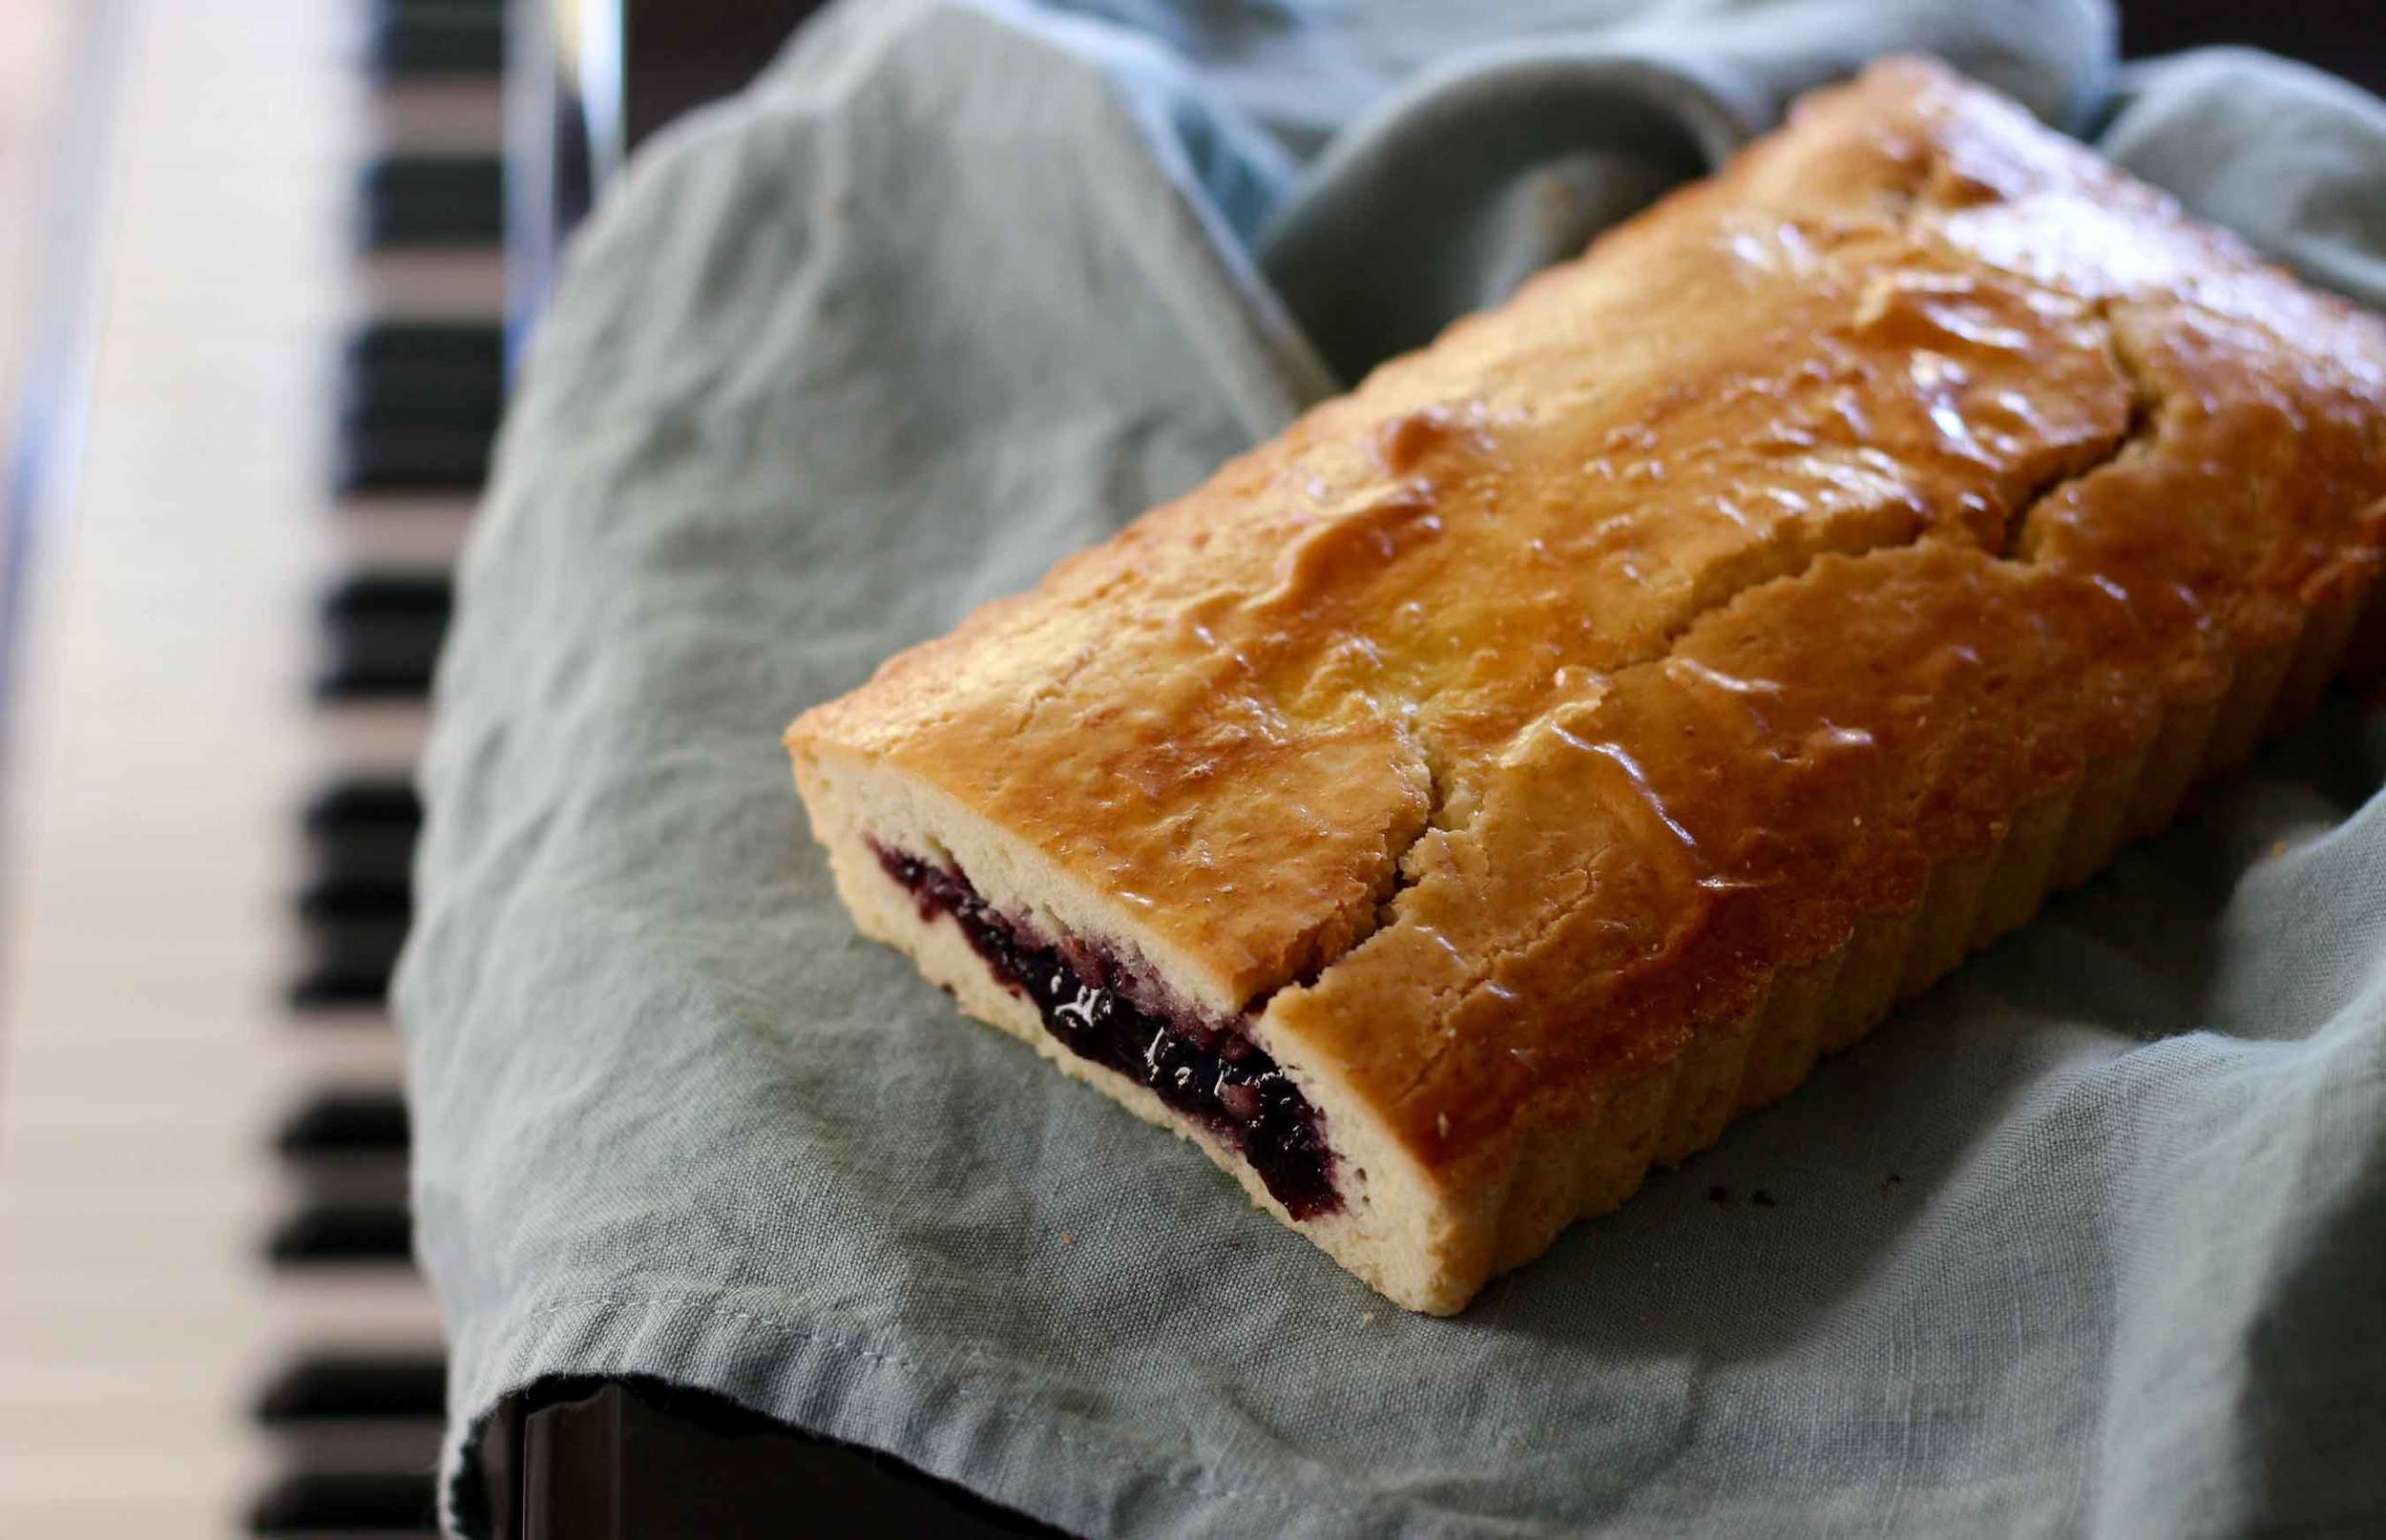 gâteau basque filled with black cherry preserves, recipe by Thread & Whisk